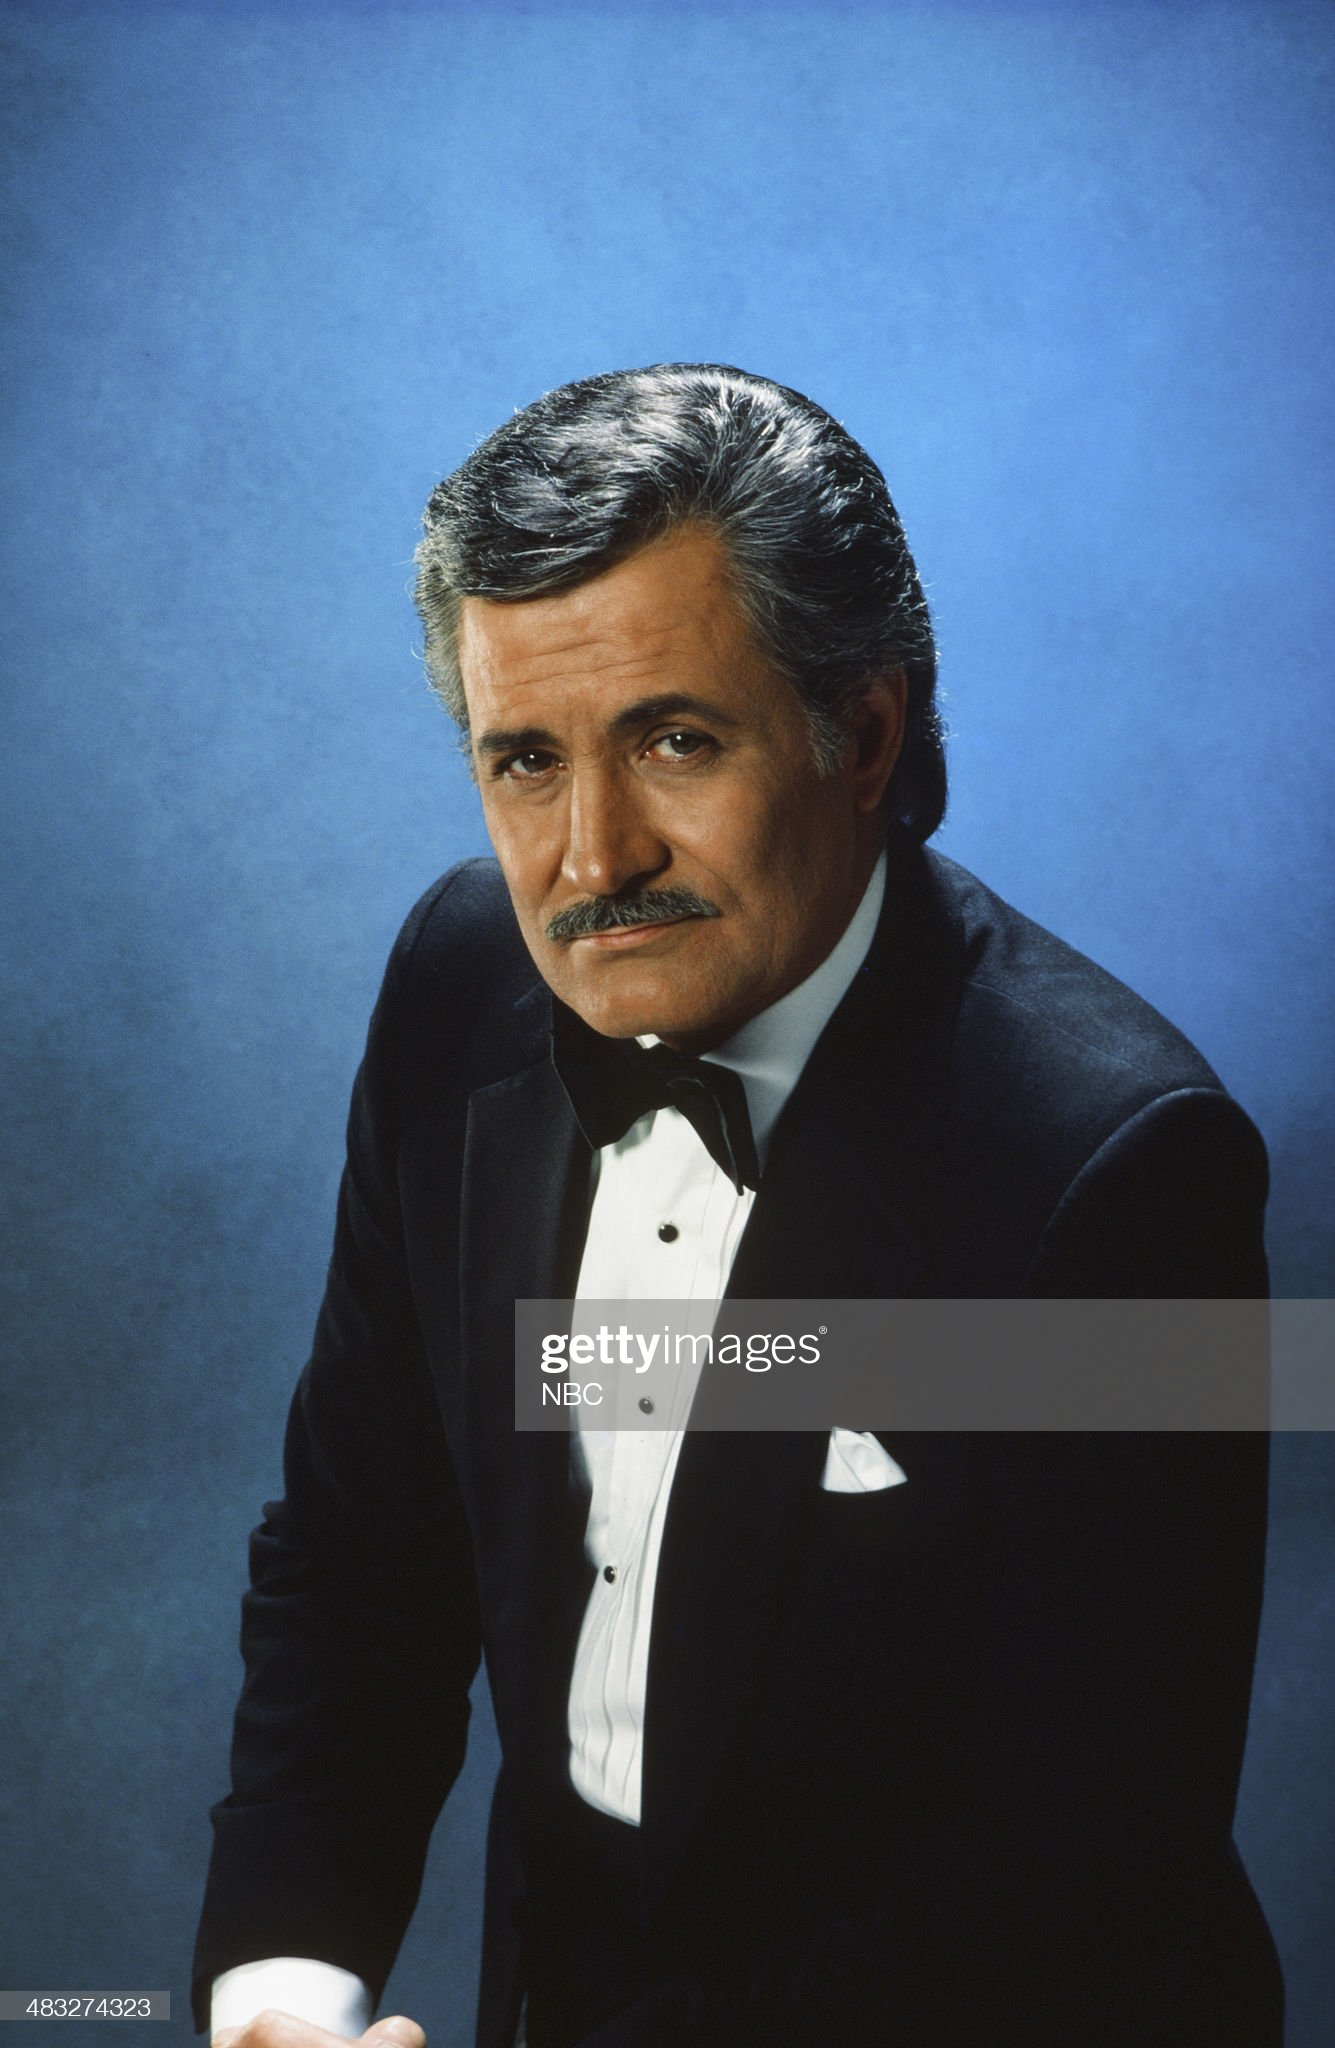 pictured-john-aniston-as-victor-kiriakis-picture-id483274323